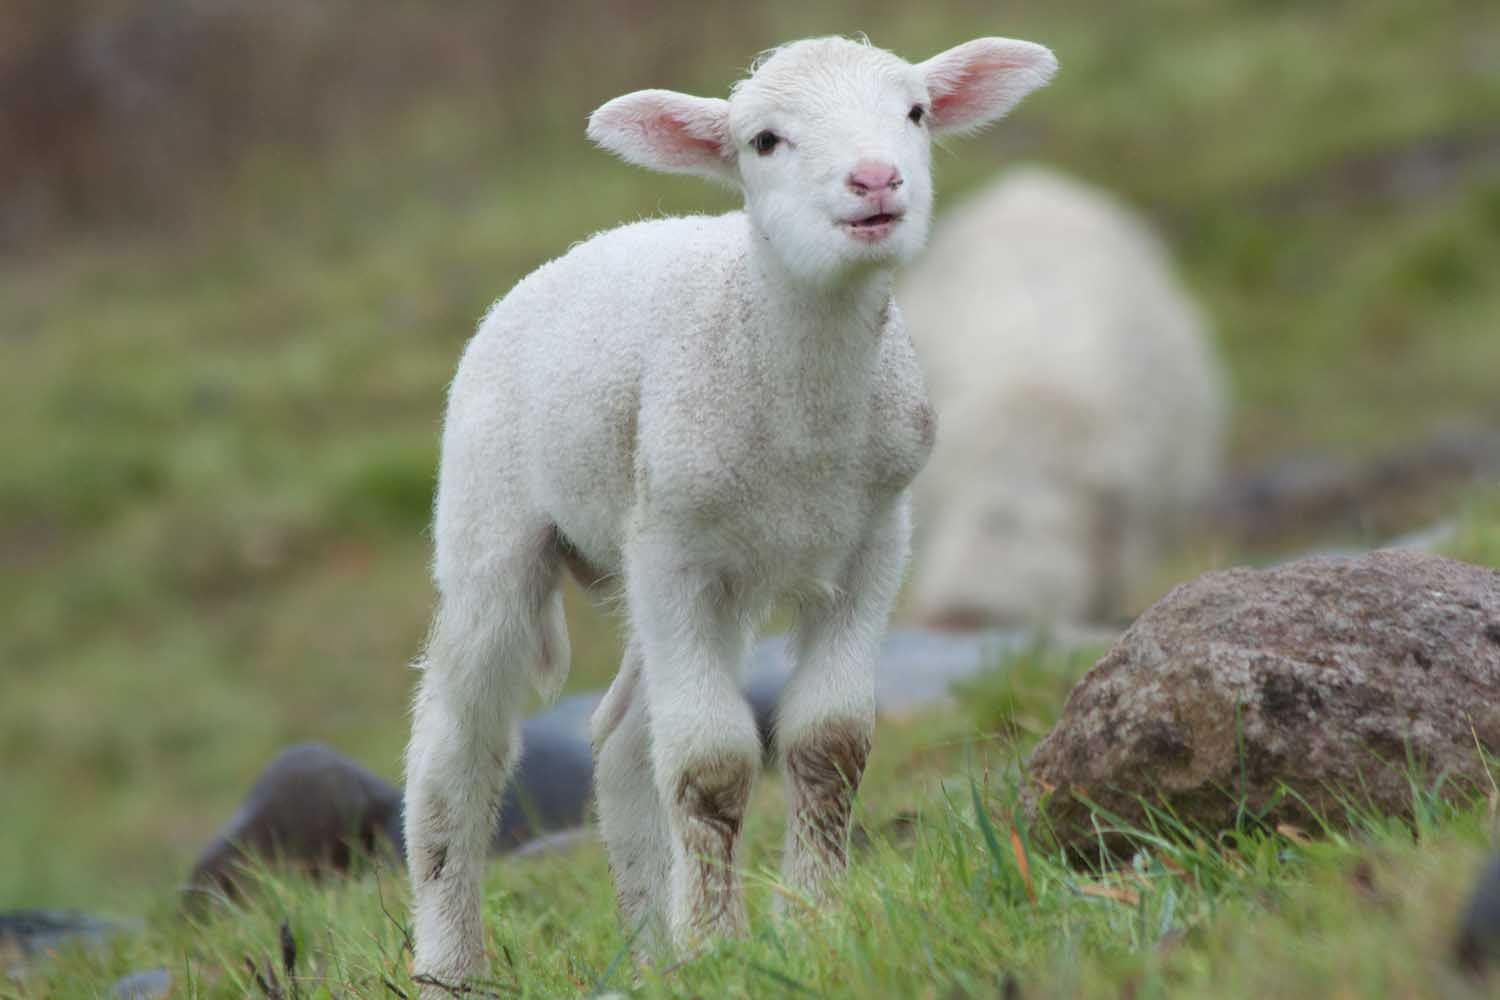 viewing gallery for cute baby lamb displaying 18 images for cute baby ...